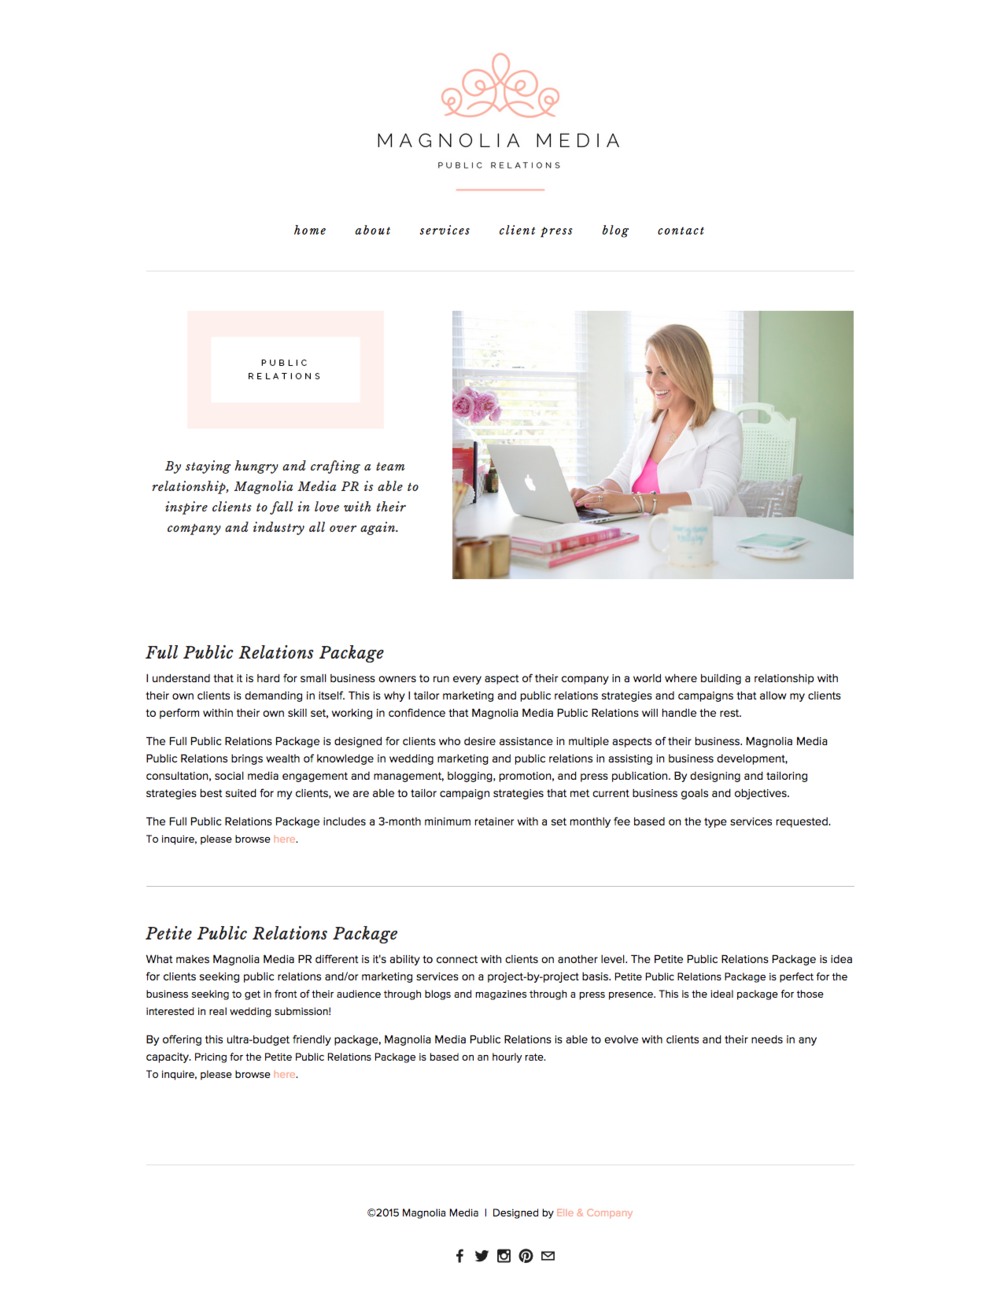 New Brand + Website Launch for Magnolia Media PR | Elle & Company